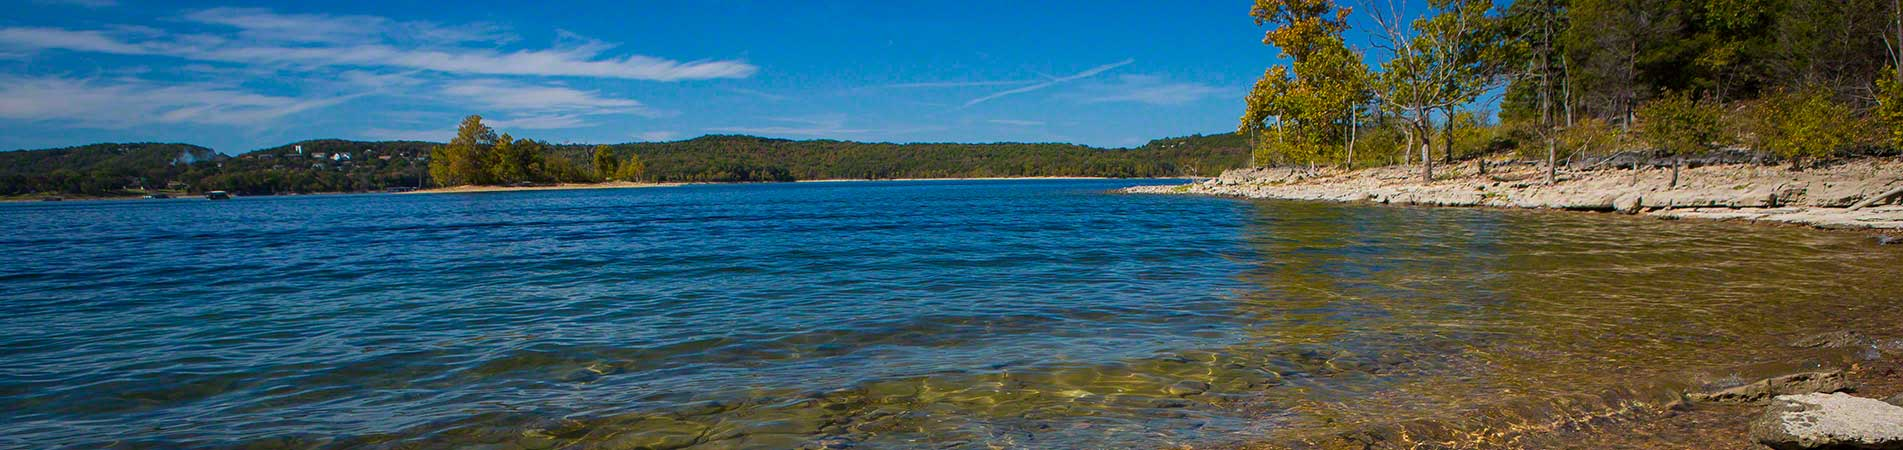 The shoreline located just a few blocks from some of our Branson lake cabins for sale.